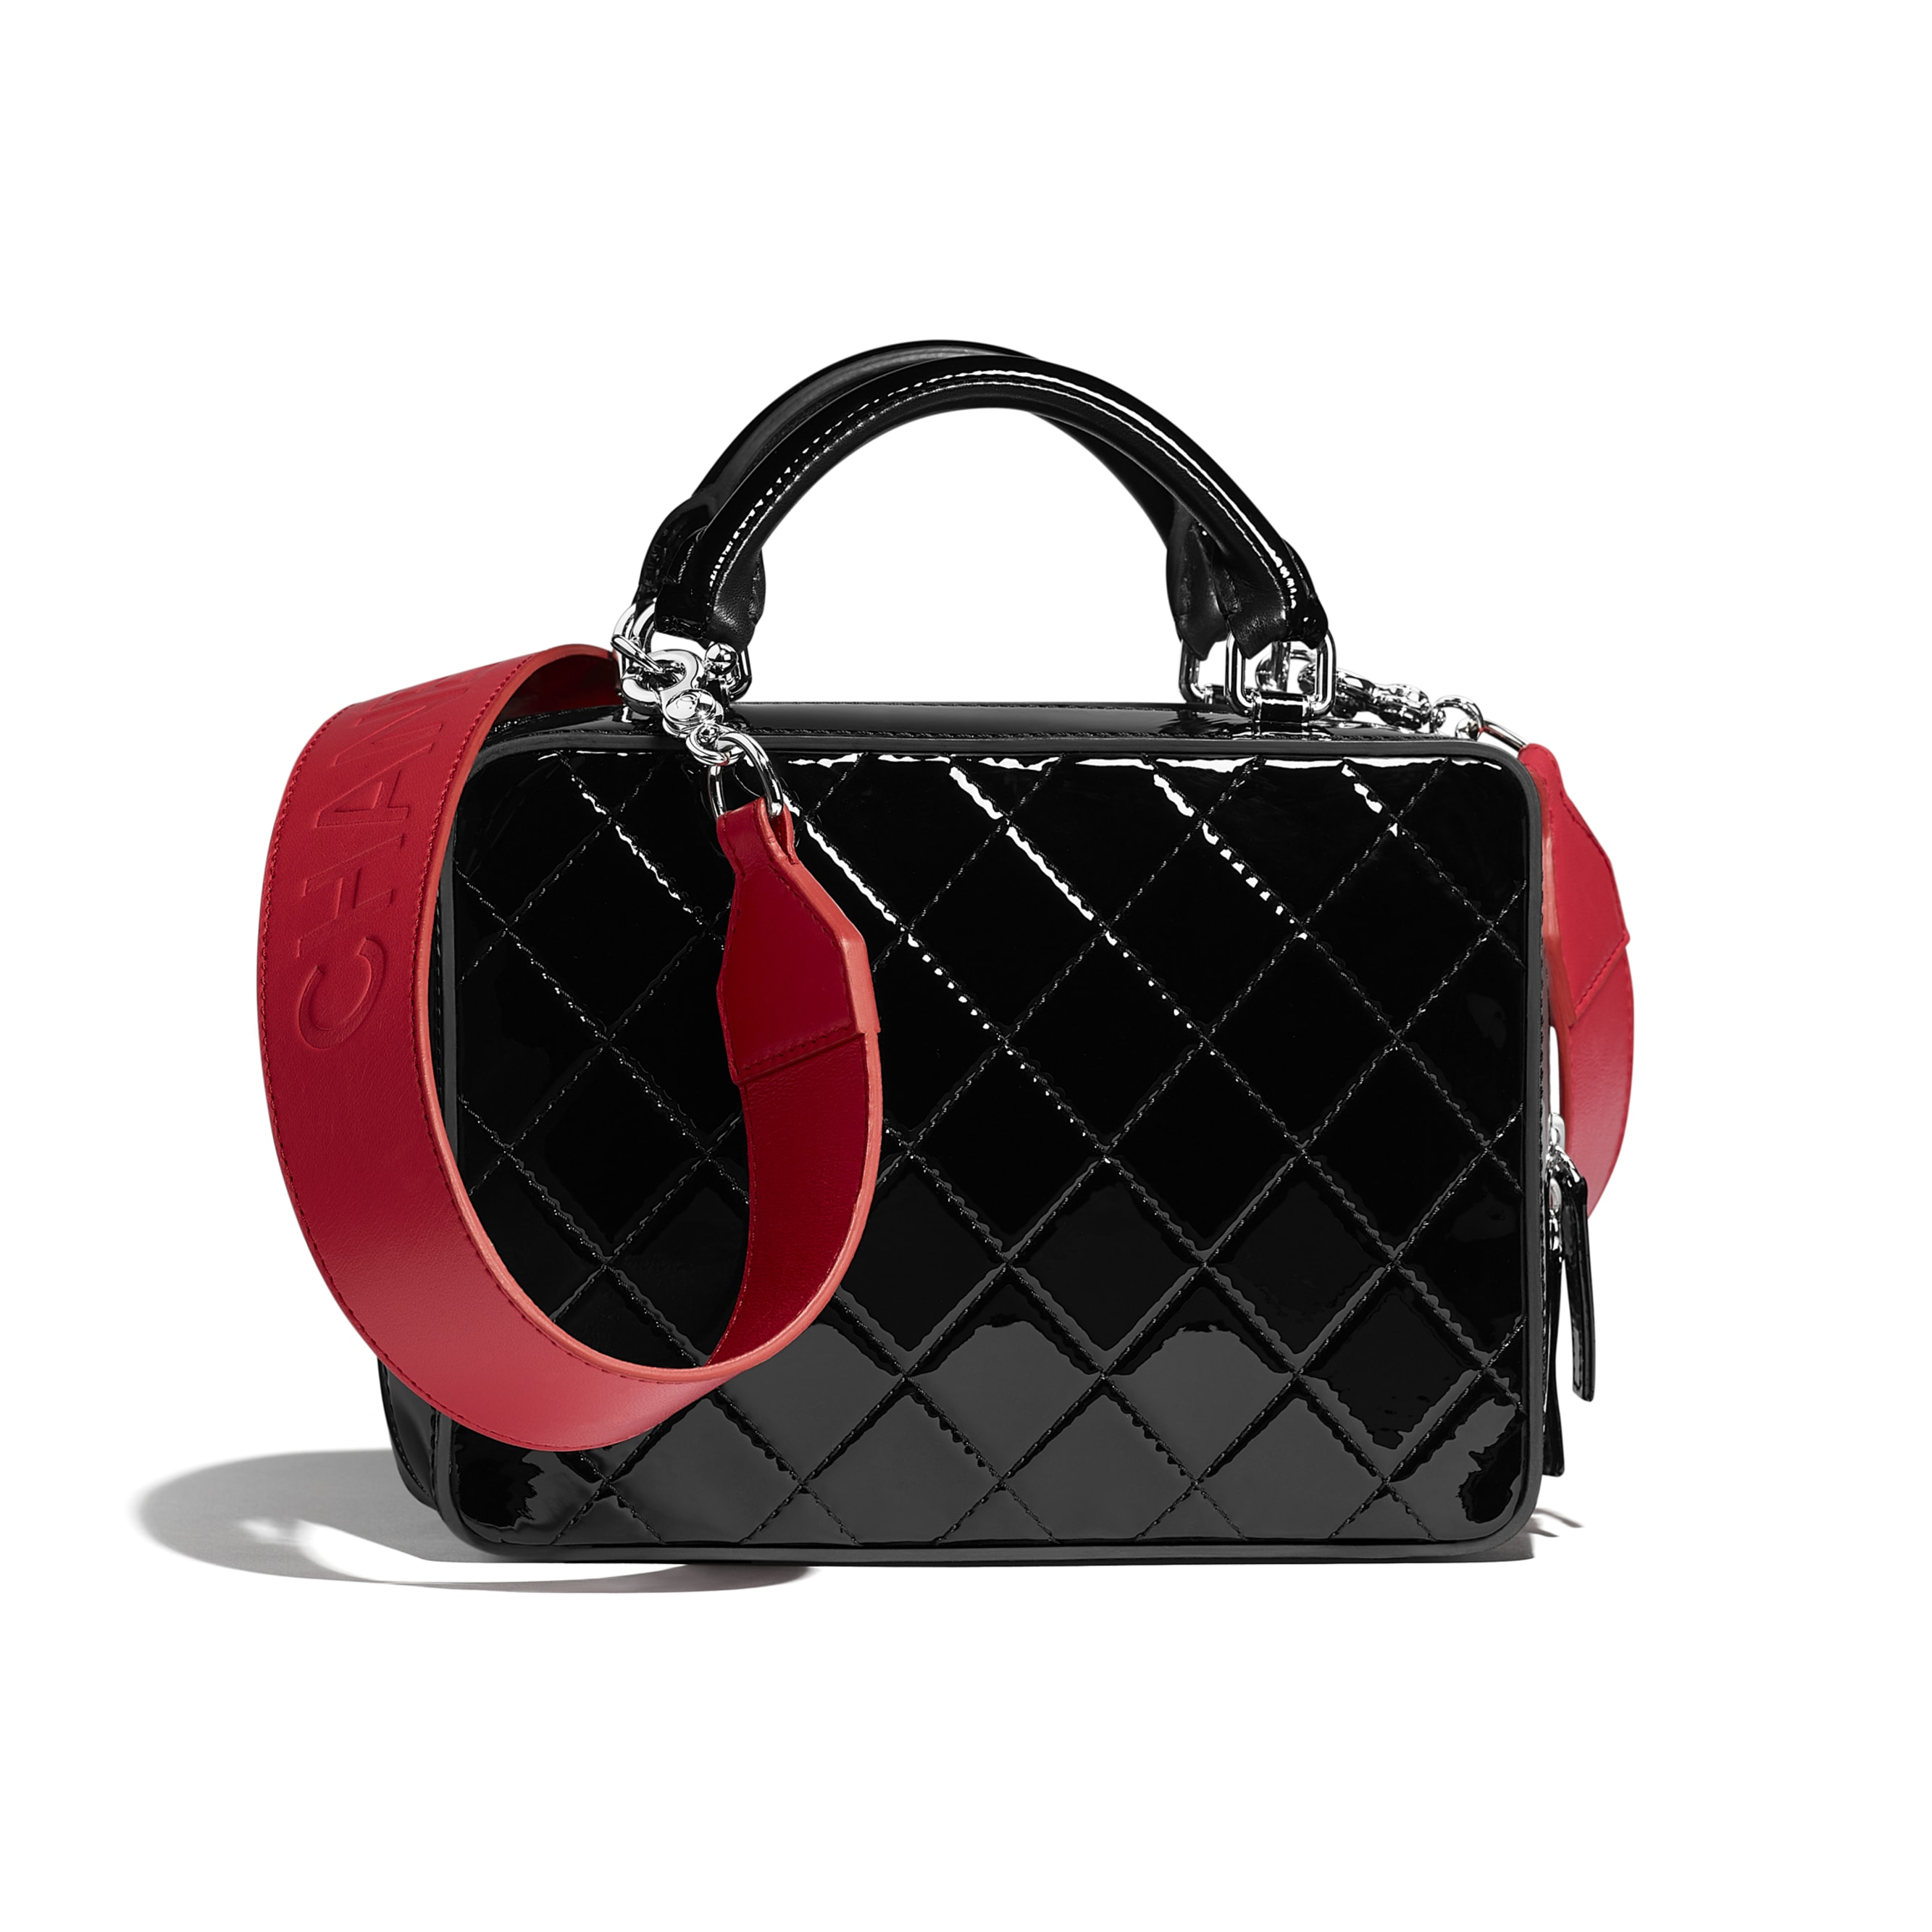 Vanity Case - Black & Red - Patent Calfskin, Calfskin & Silver-Tone Metal - Alternative view - see standard sized version